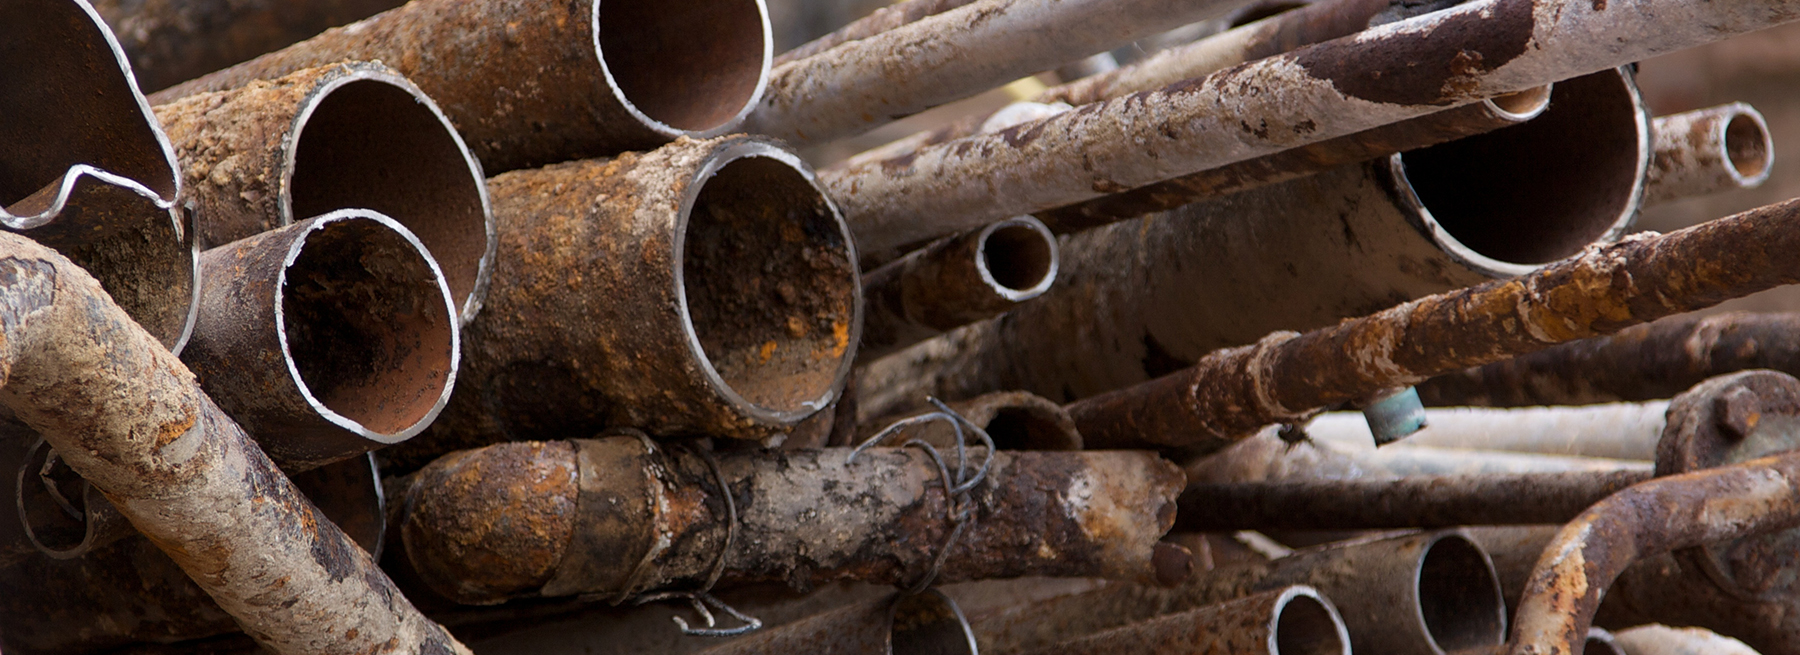 lead exposure from water supply pipes